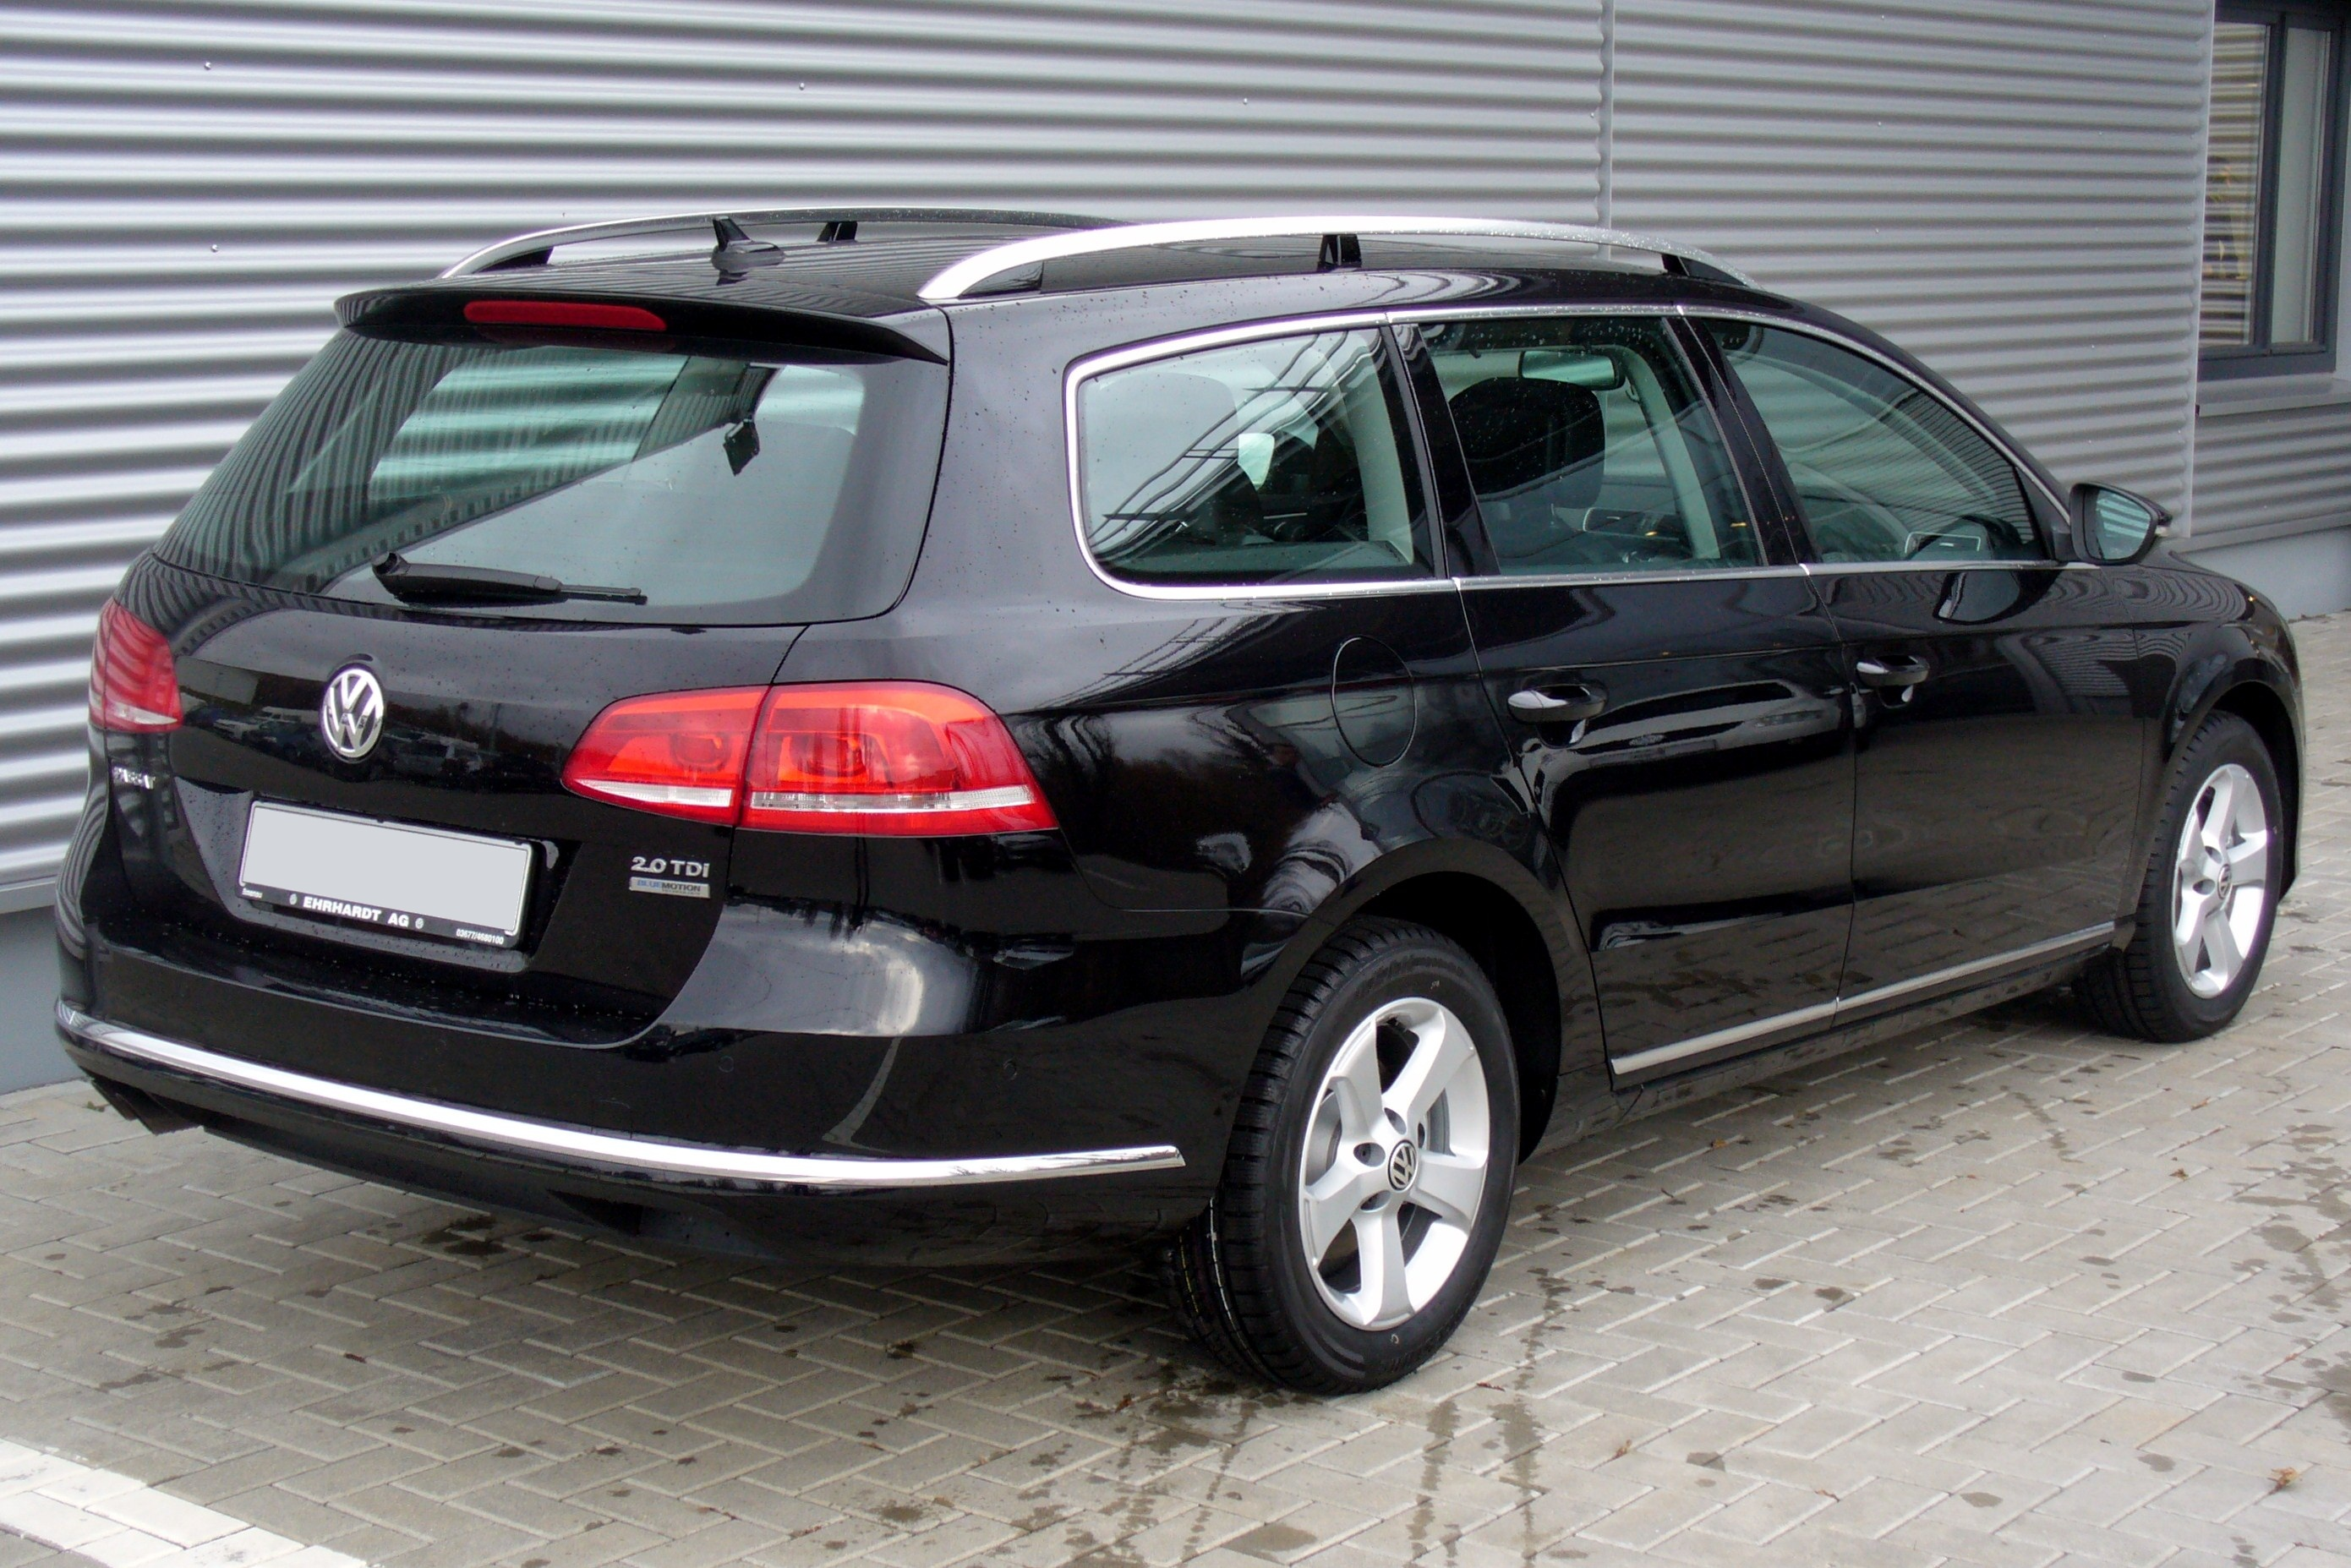 2010 volkswagen passat variant 2 0 tdi related infomation specifications weili automotive network. Black Bedroom Furniture Sets. Home Design Ideas